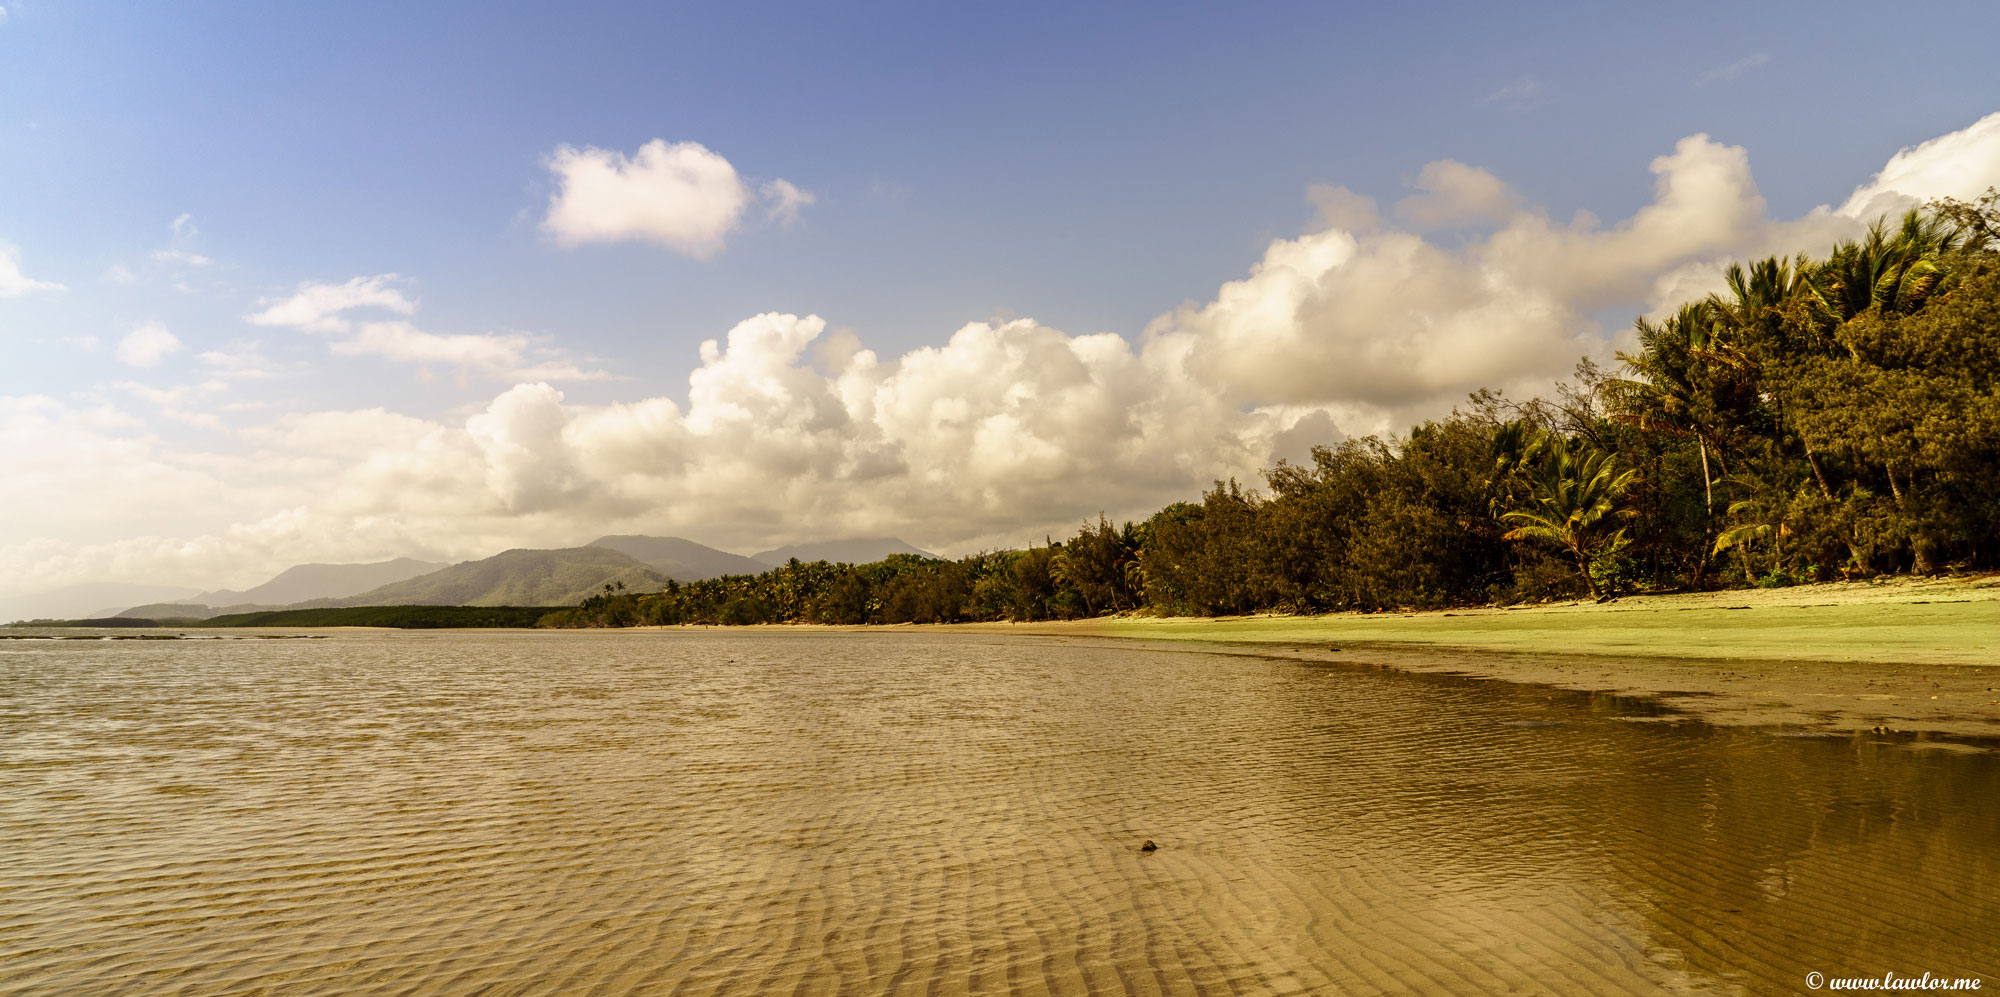 Four Mile Beach, Port Douglas, Queensland, Australia, Free Landscape Photography, free landscape photos, free nature images, free HD images, free high definition stock images, free stock images download, desktop background, desktop wallpapers, free screensaver